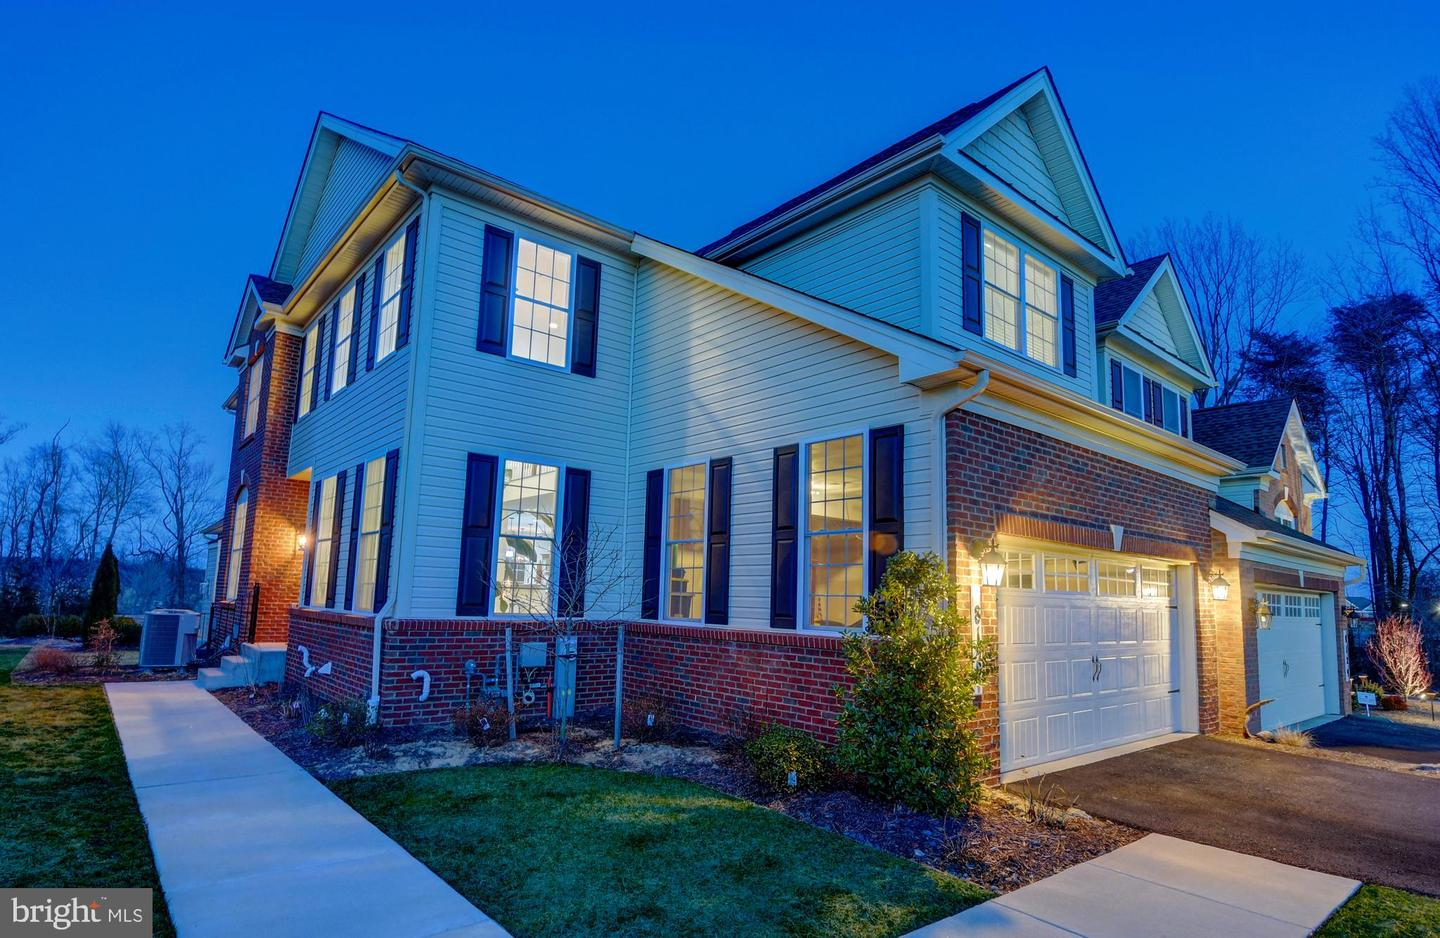 Single Family Home for Sale at 8127 Orchard Blossom Lane 8127 Orchard Blossom Lane Severn, Maryland 21144 United States